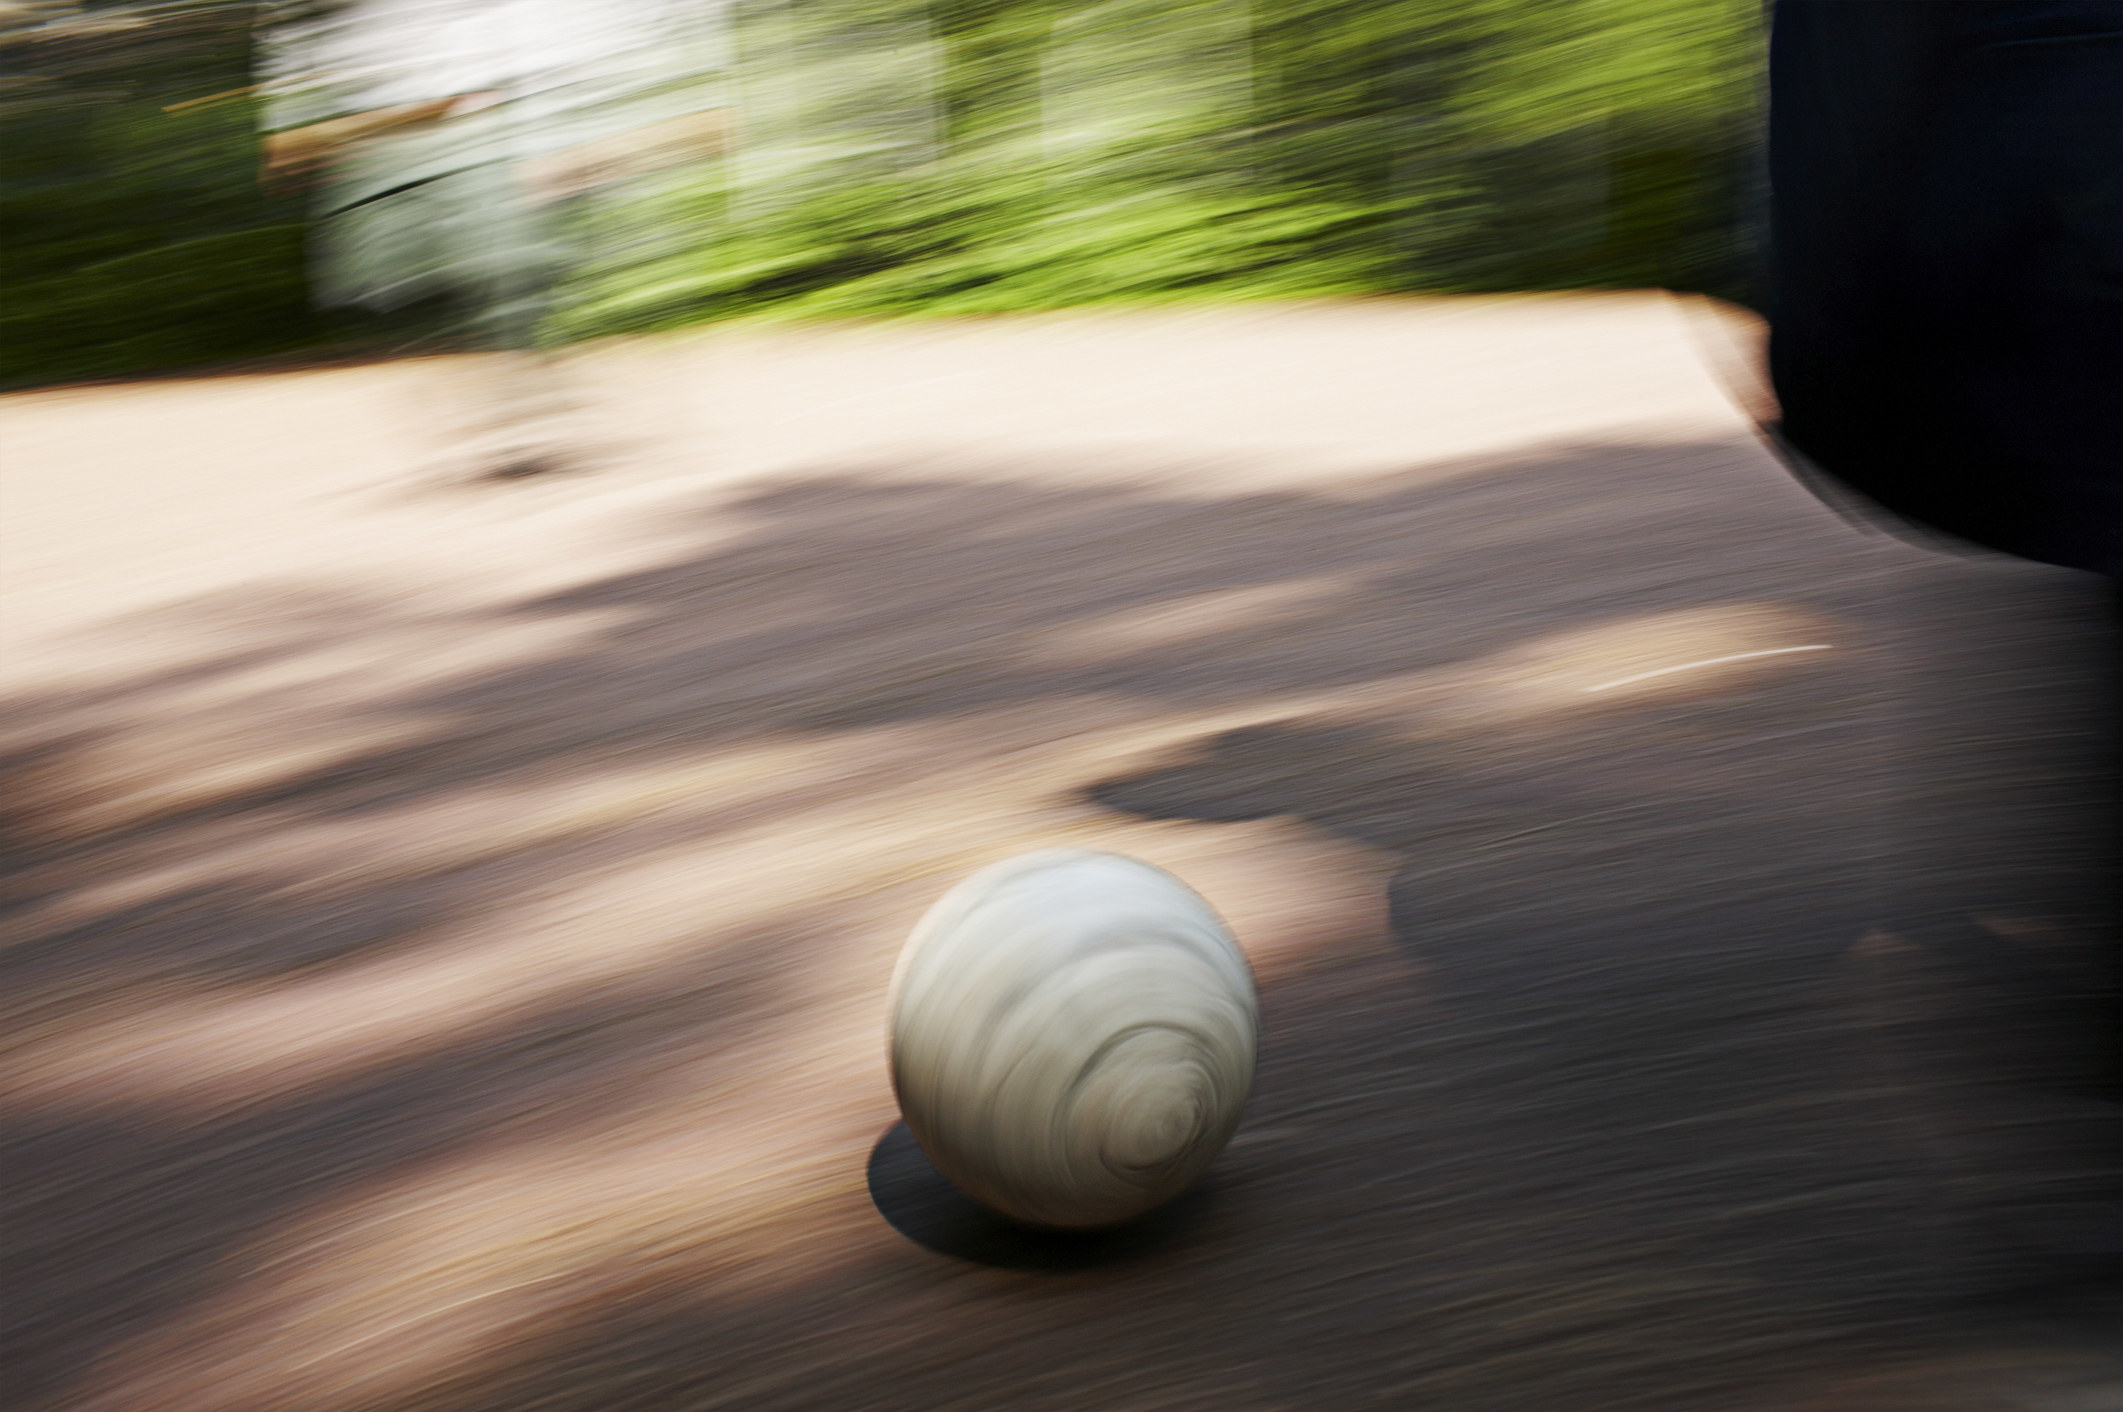 Ball rolling outdoors